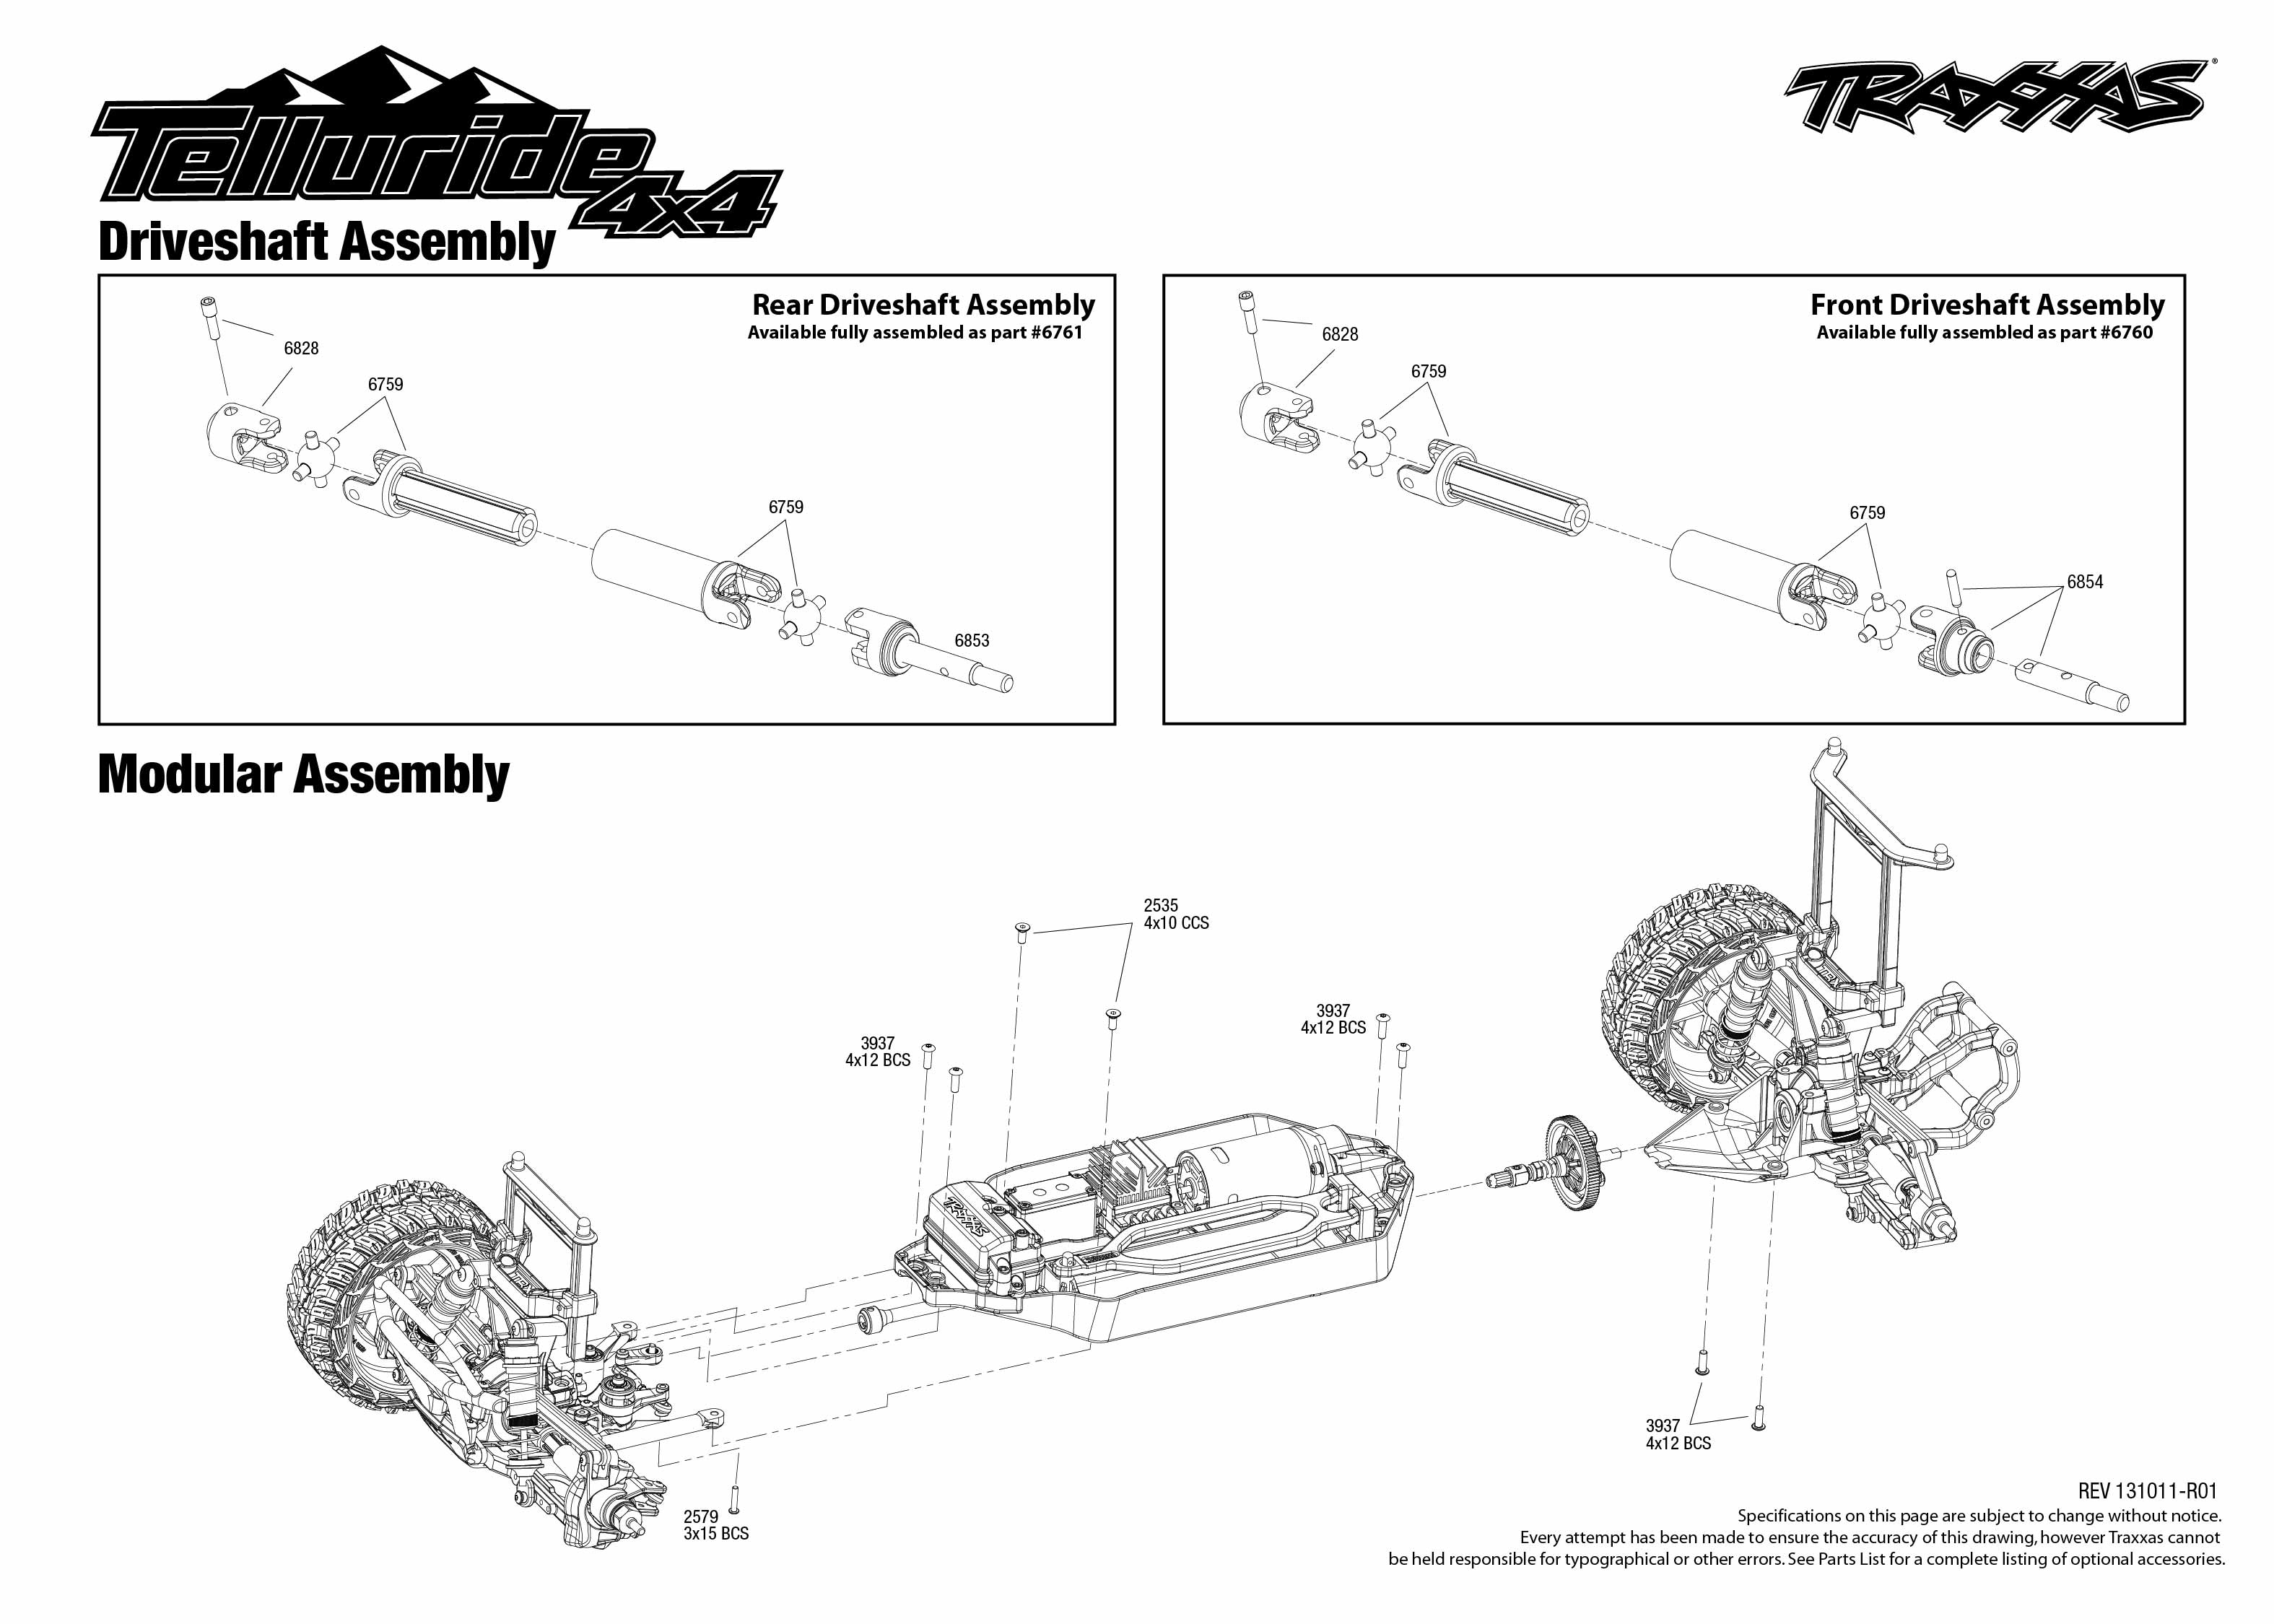 Traxxas Telluride Parts Diagram Experience Of Wiring 4x4 67044 Driveshafts Assembly Rh Com 33 Engine Manual